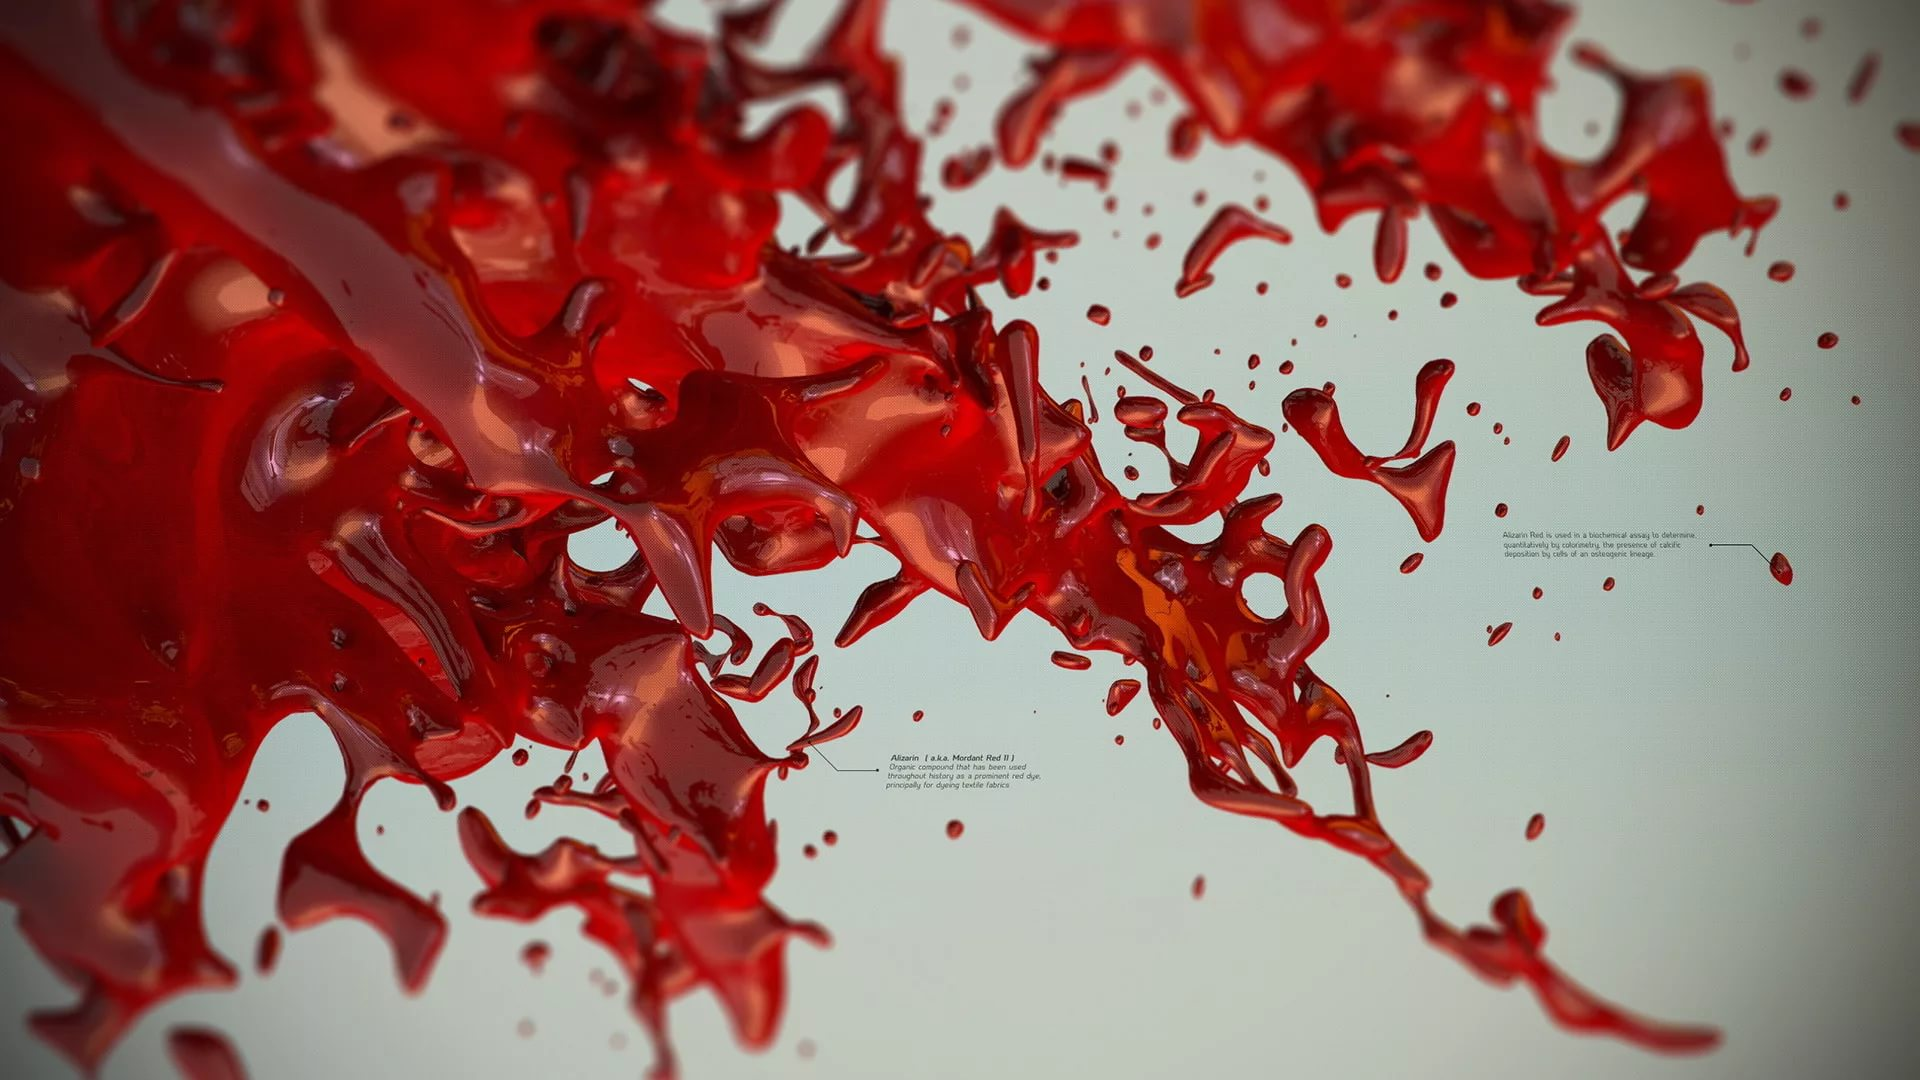 Blood desktop wallpaper